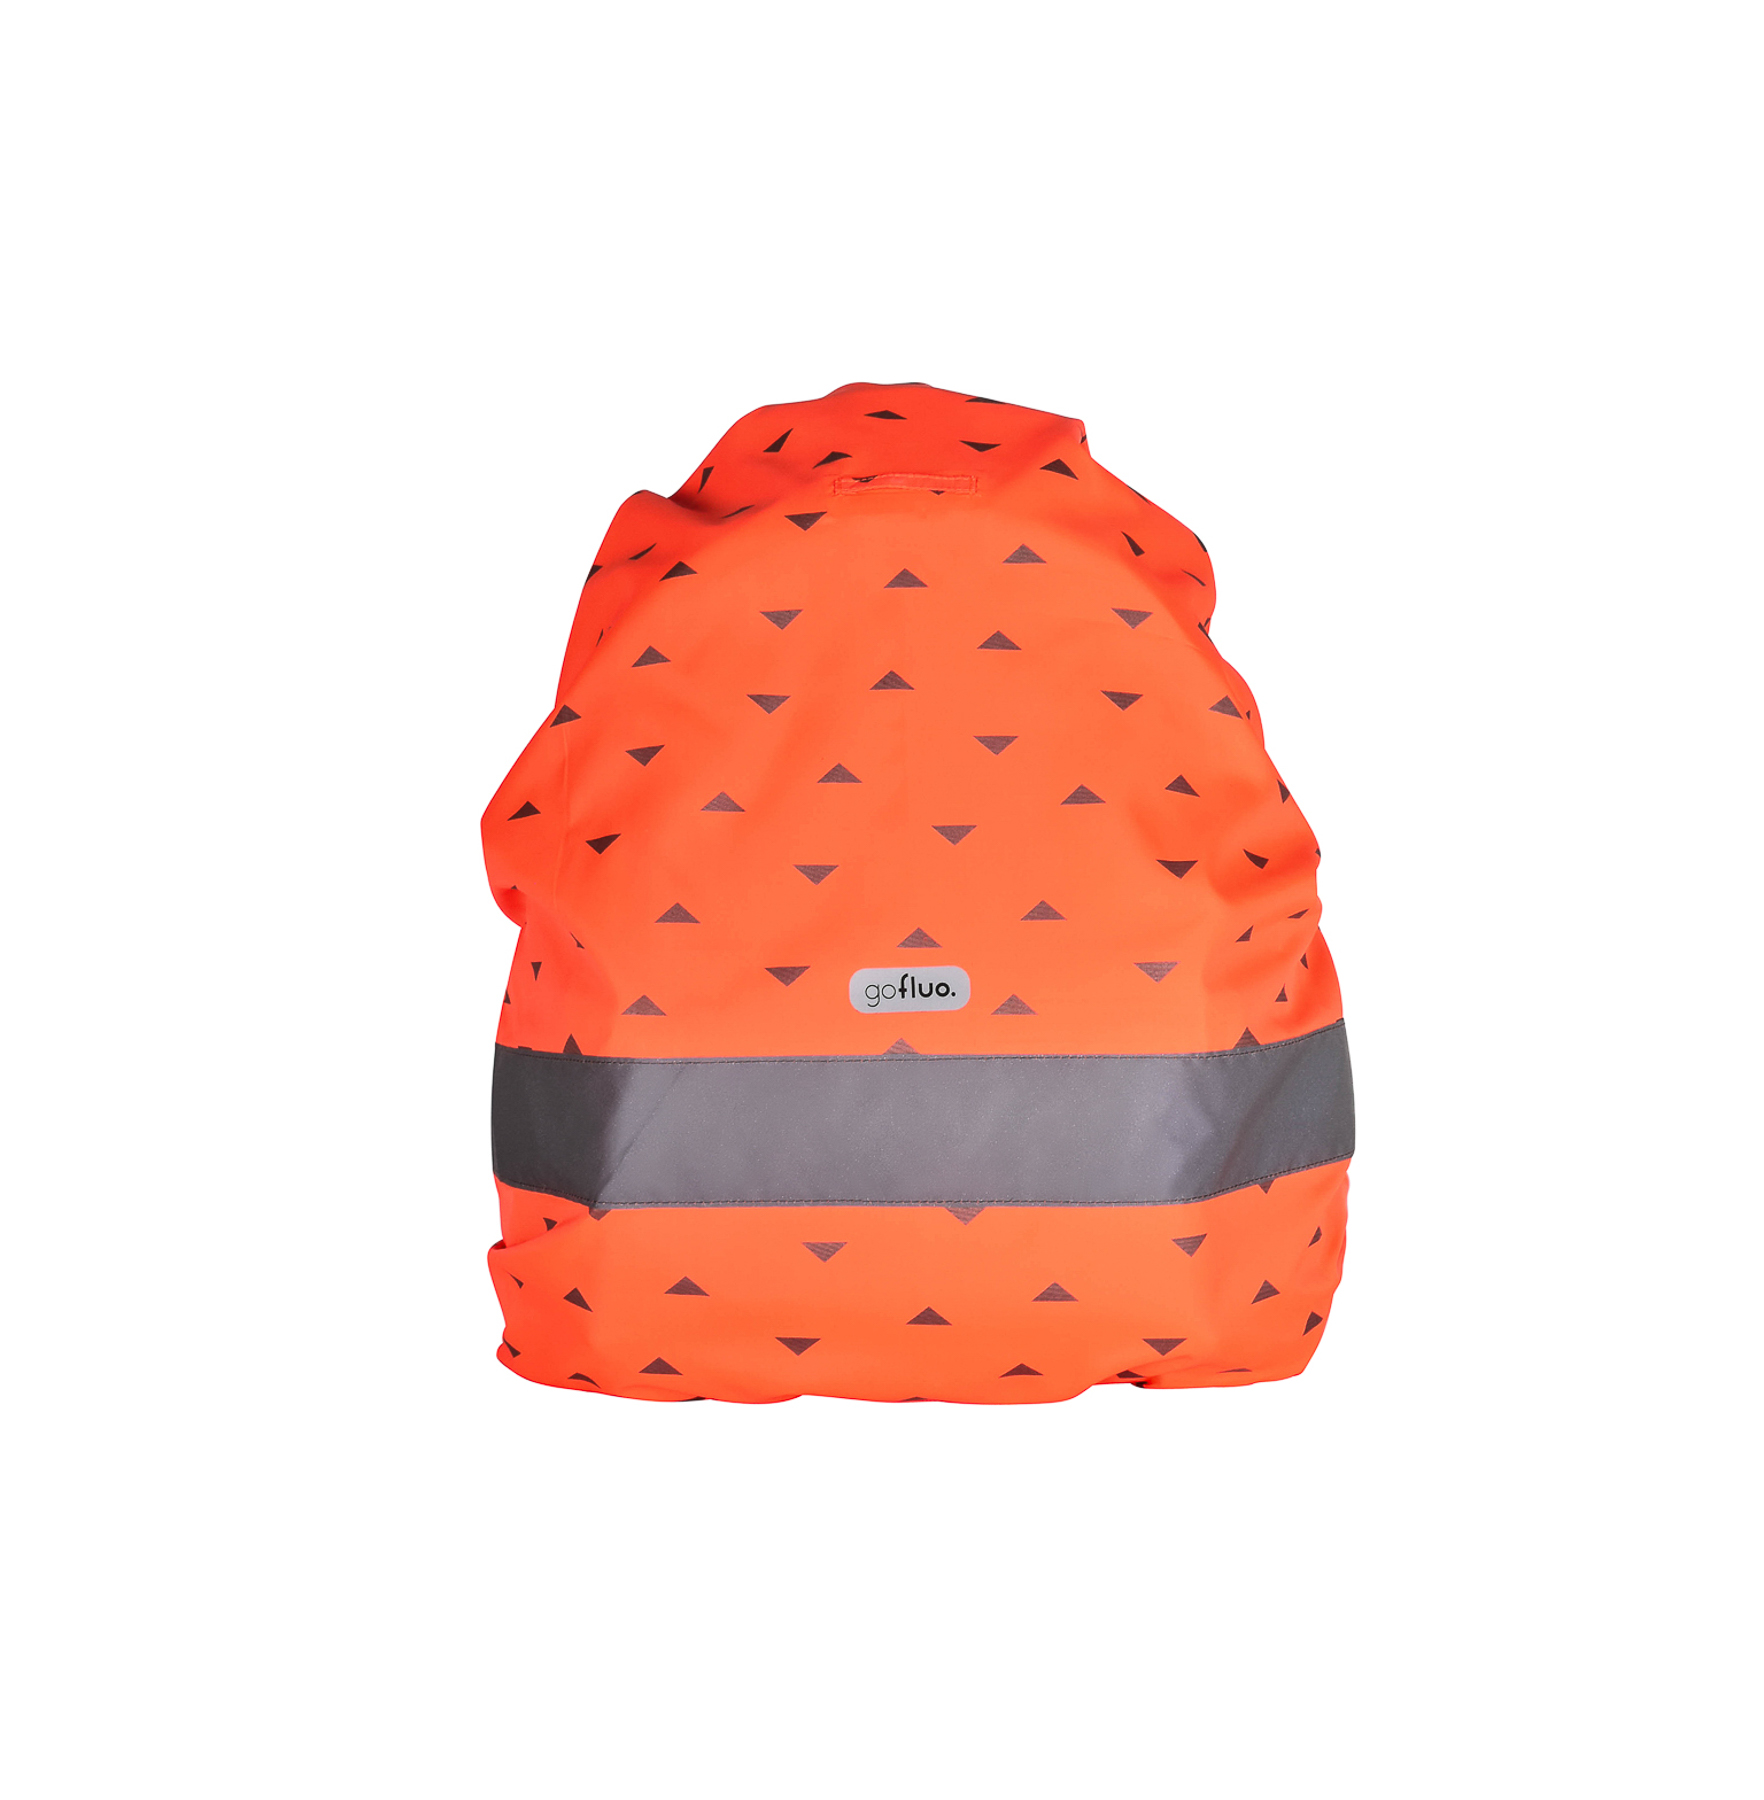 Rugzakhoes Nell rood oranje one size